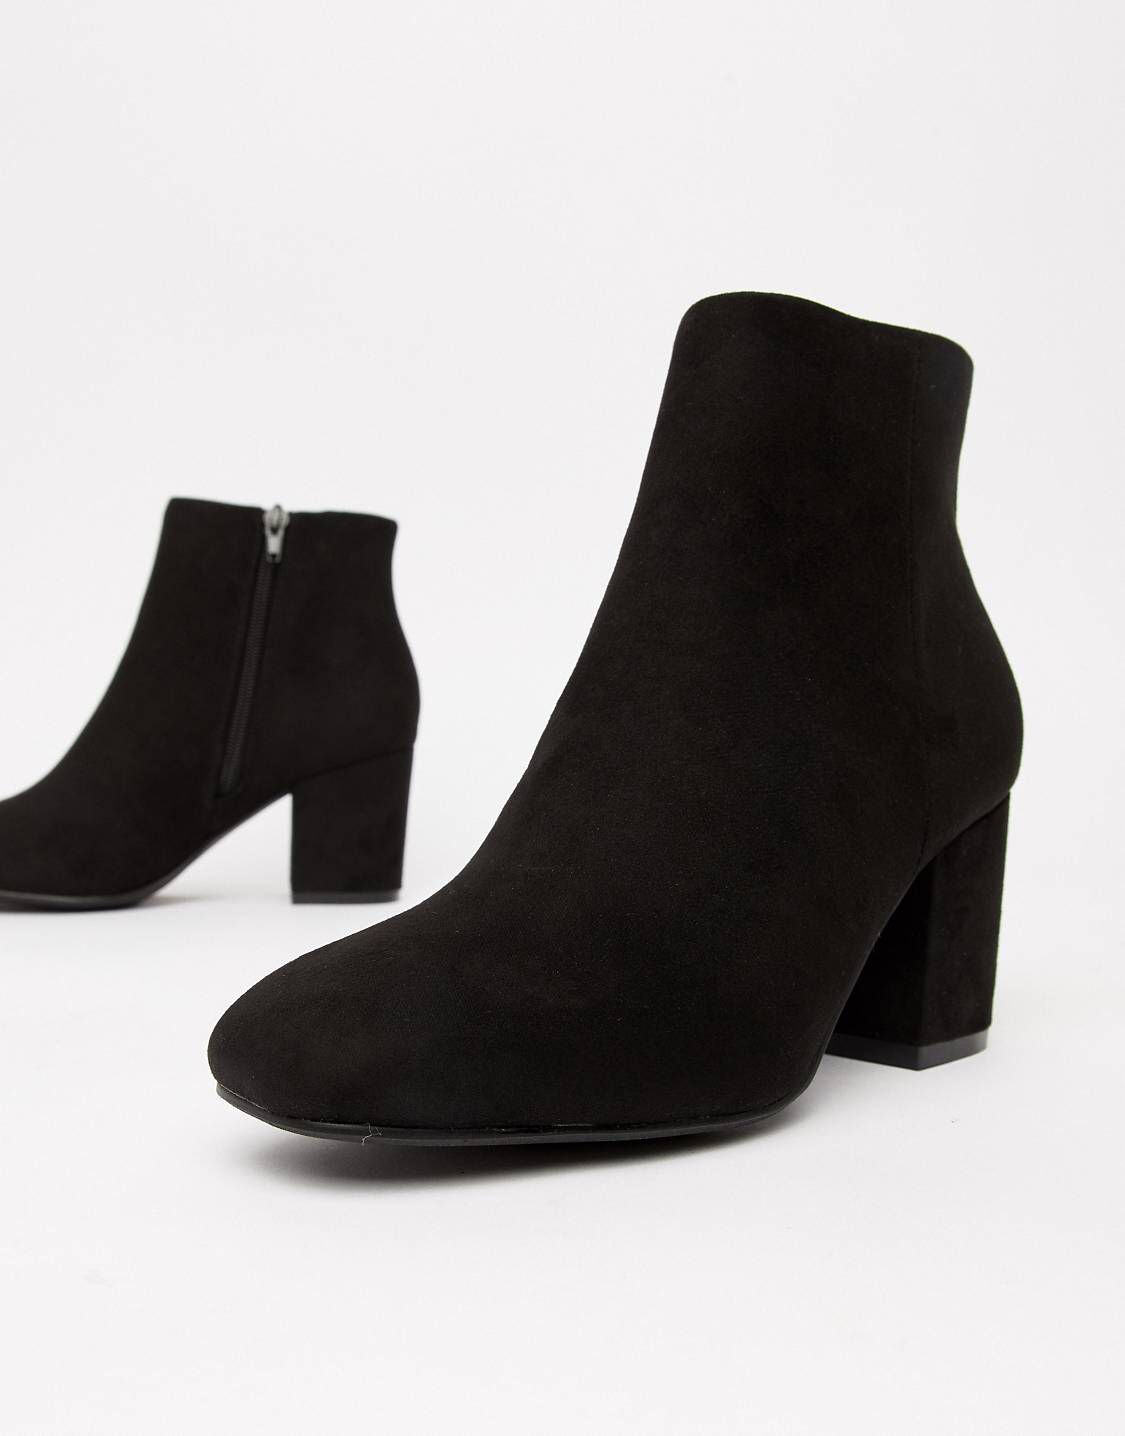 Pin On Women S Winter Shoes And Boots